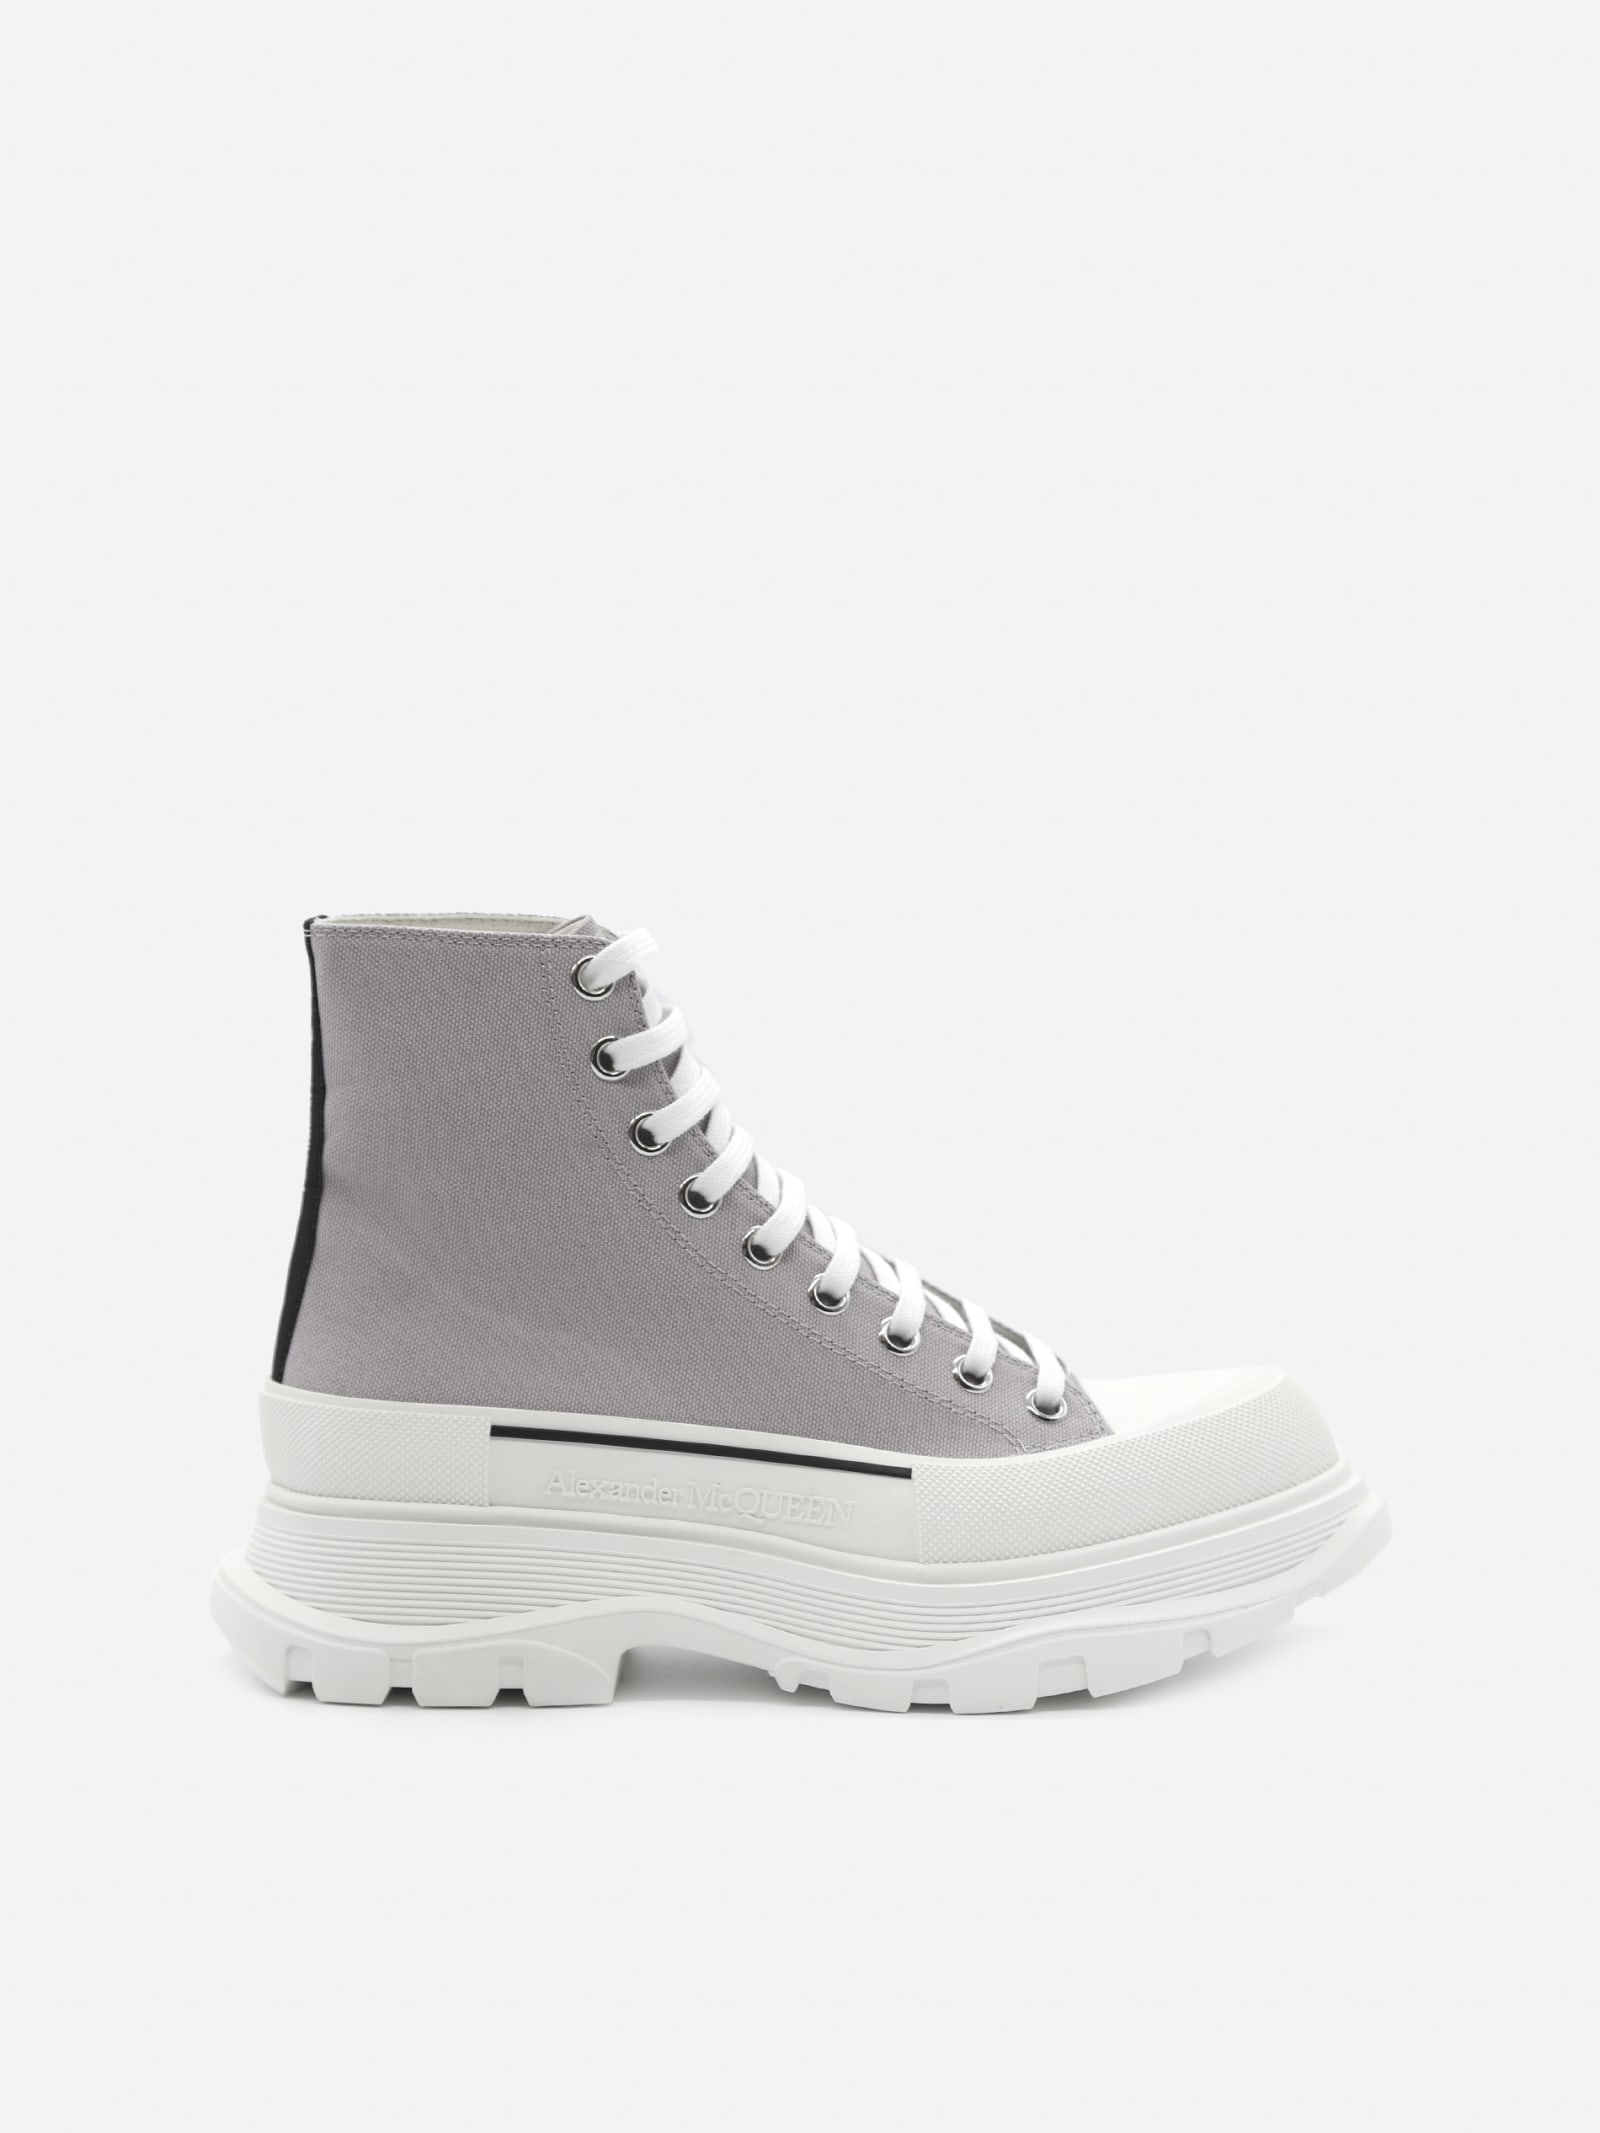 Alexander McQueen Tread Slick Ankle Boots In Cotton Canvas